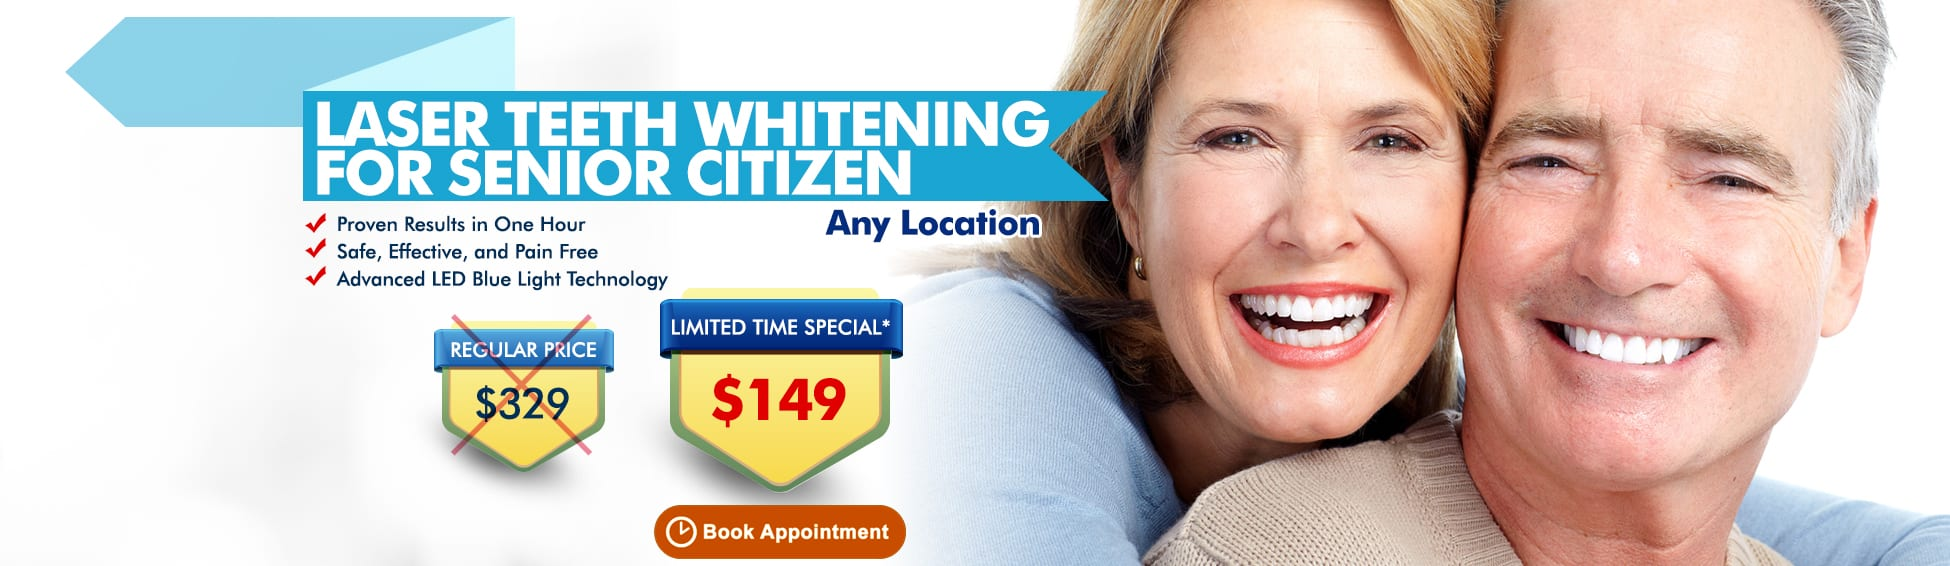 Laser Teeth Whitening For Senior Citizen – Any Location - $199 $149